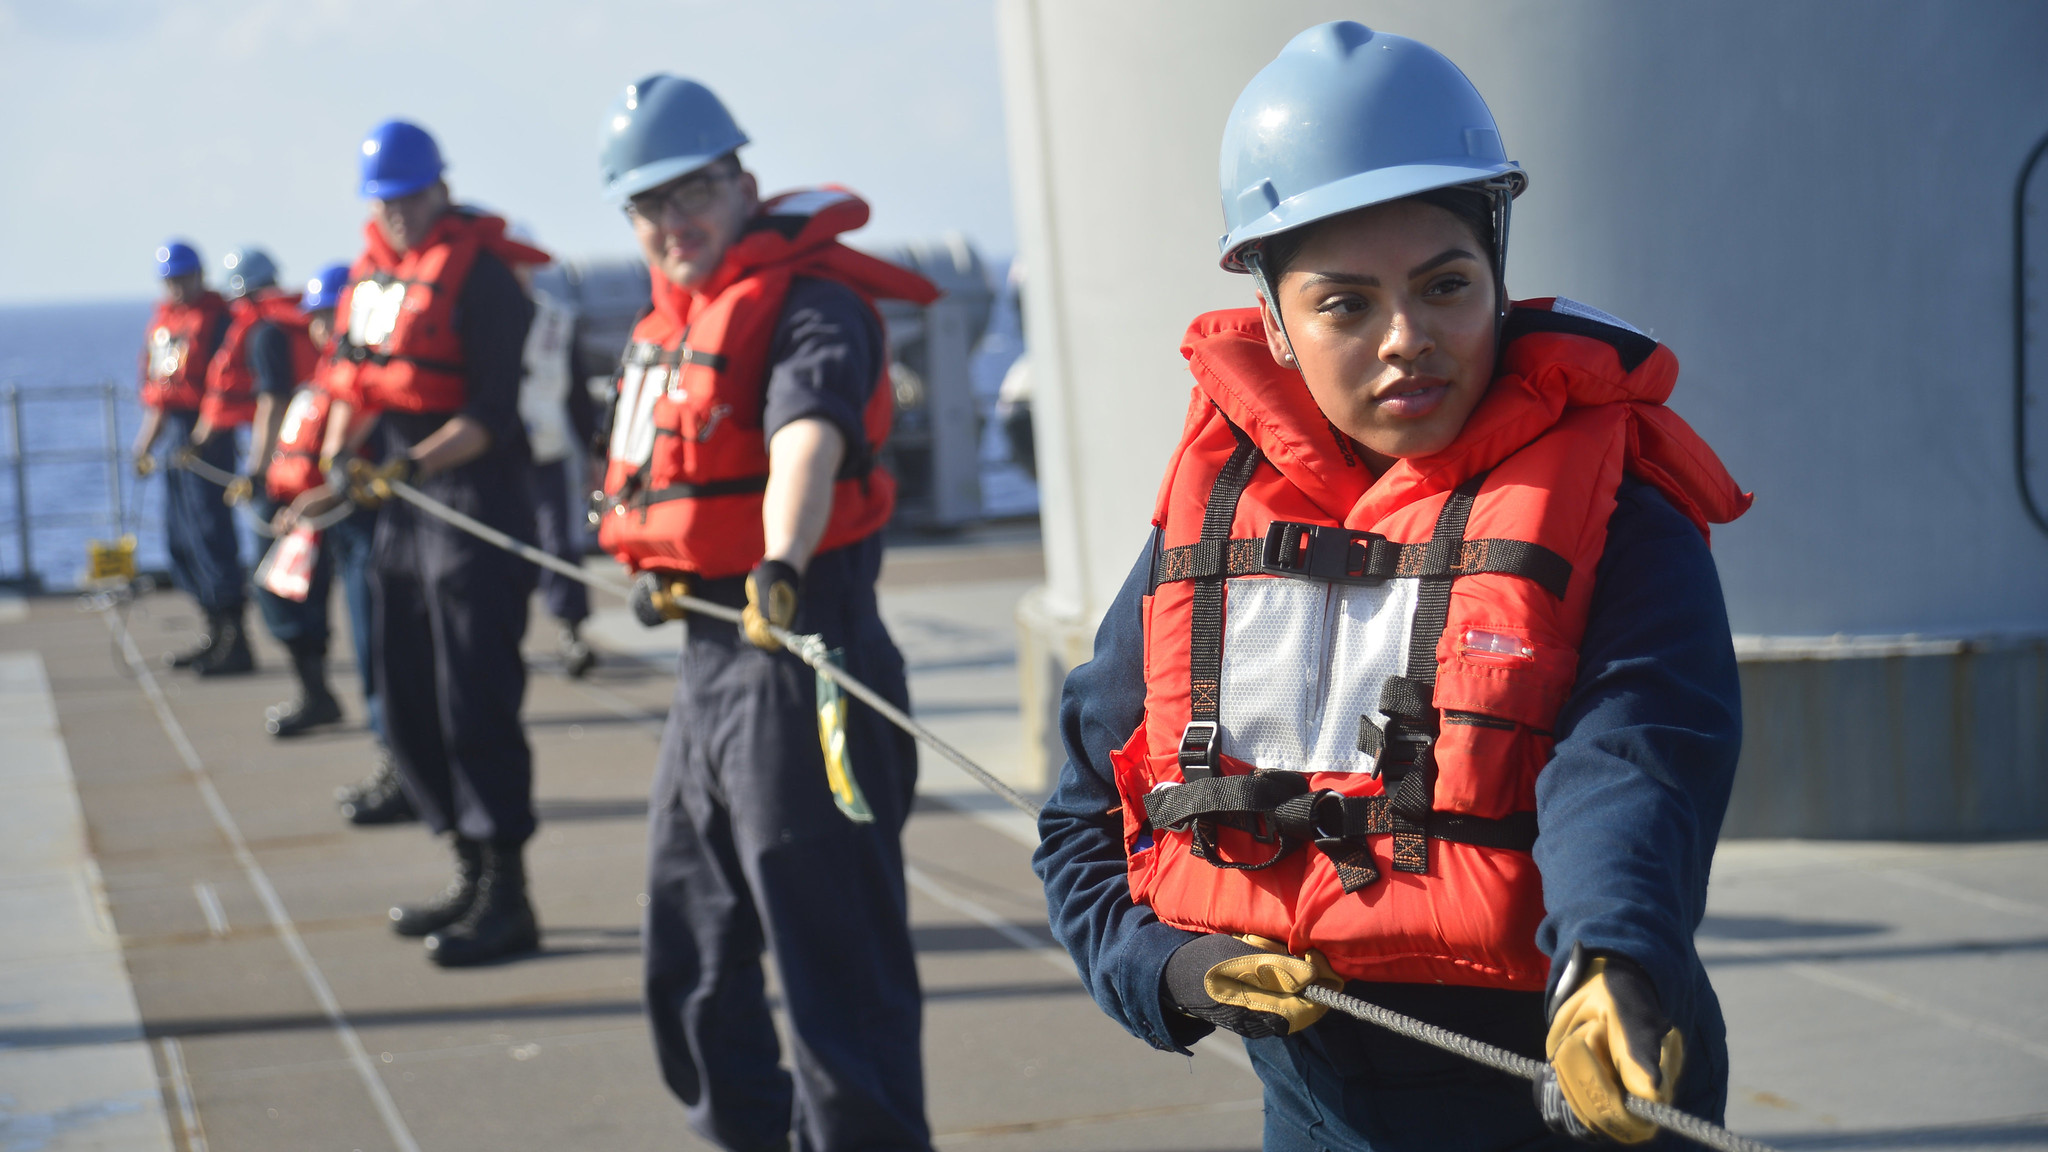 Personnel Specialist 2nd Class Elida Villalobos, from Salem, Ore., heaves around line to Fleet Replenishment Oiler USNS Guadalupe (T-AO 200) during a replenishment-at-sea with U.S. 7th Fleet Flagship USS Blue Ridge (LCC 19) in the South China Sea, March 20, 2019. (Mass Communication Specialist 3rd Class Mar'Queon A. D. Tramble/Navy)